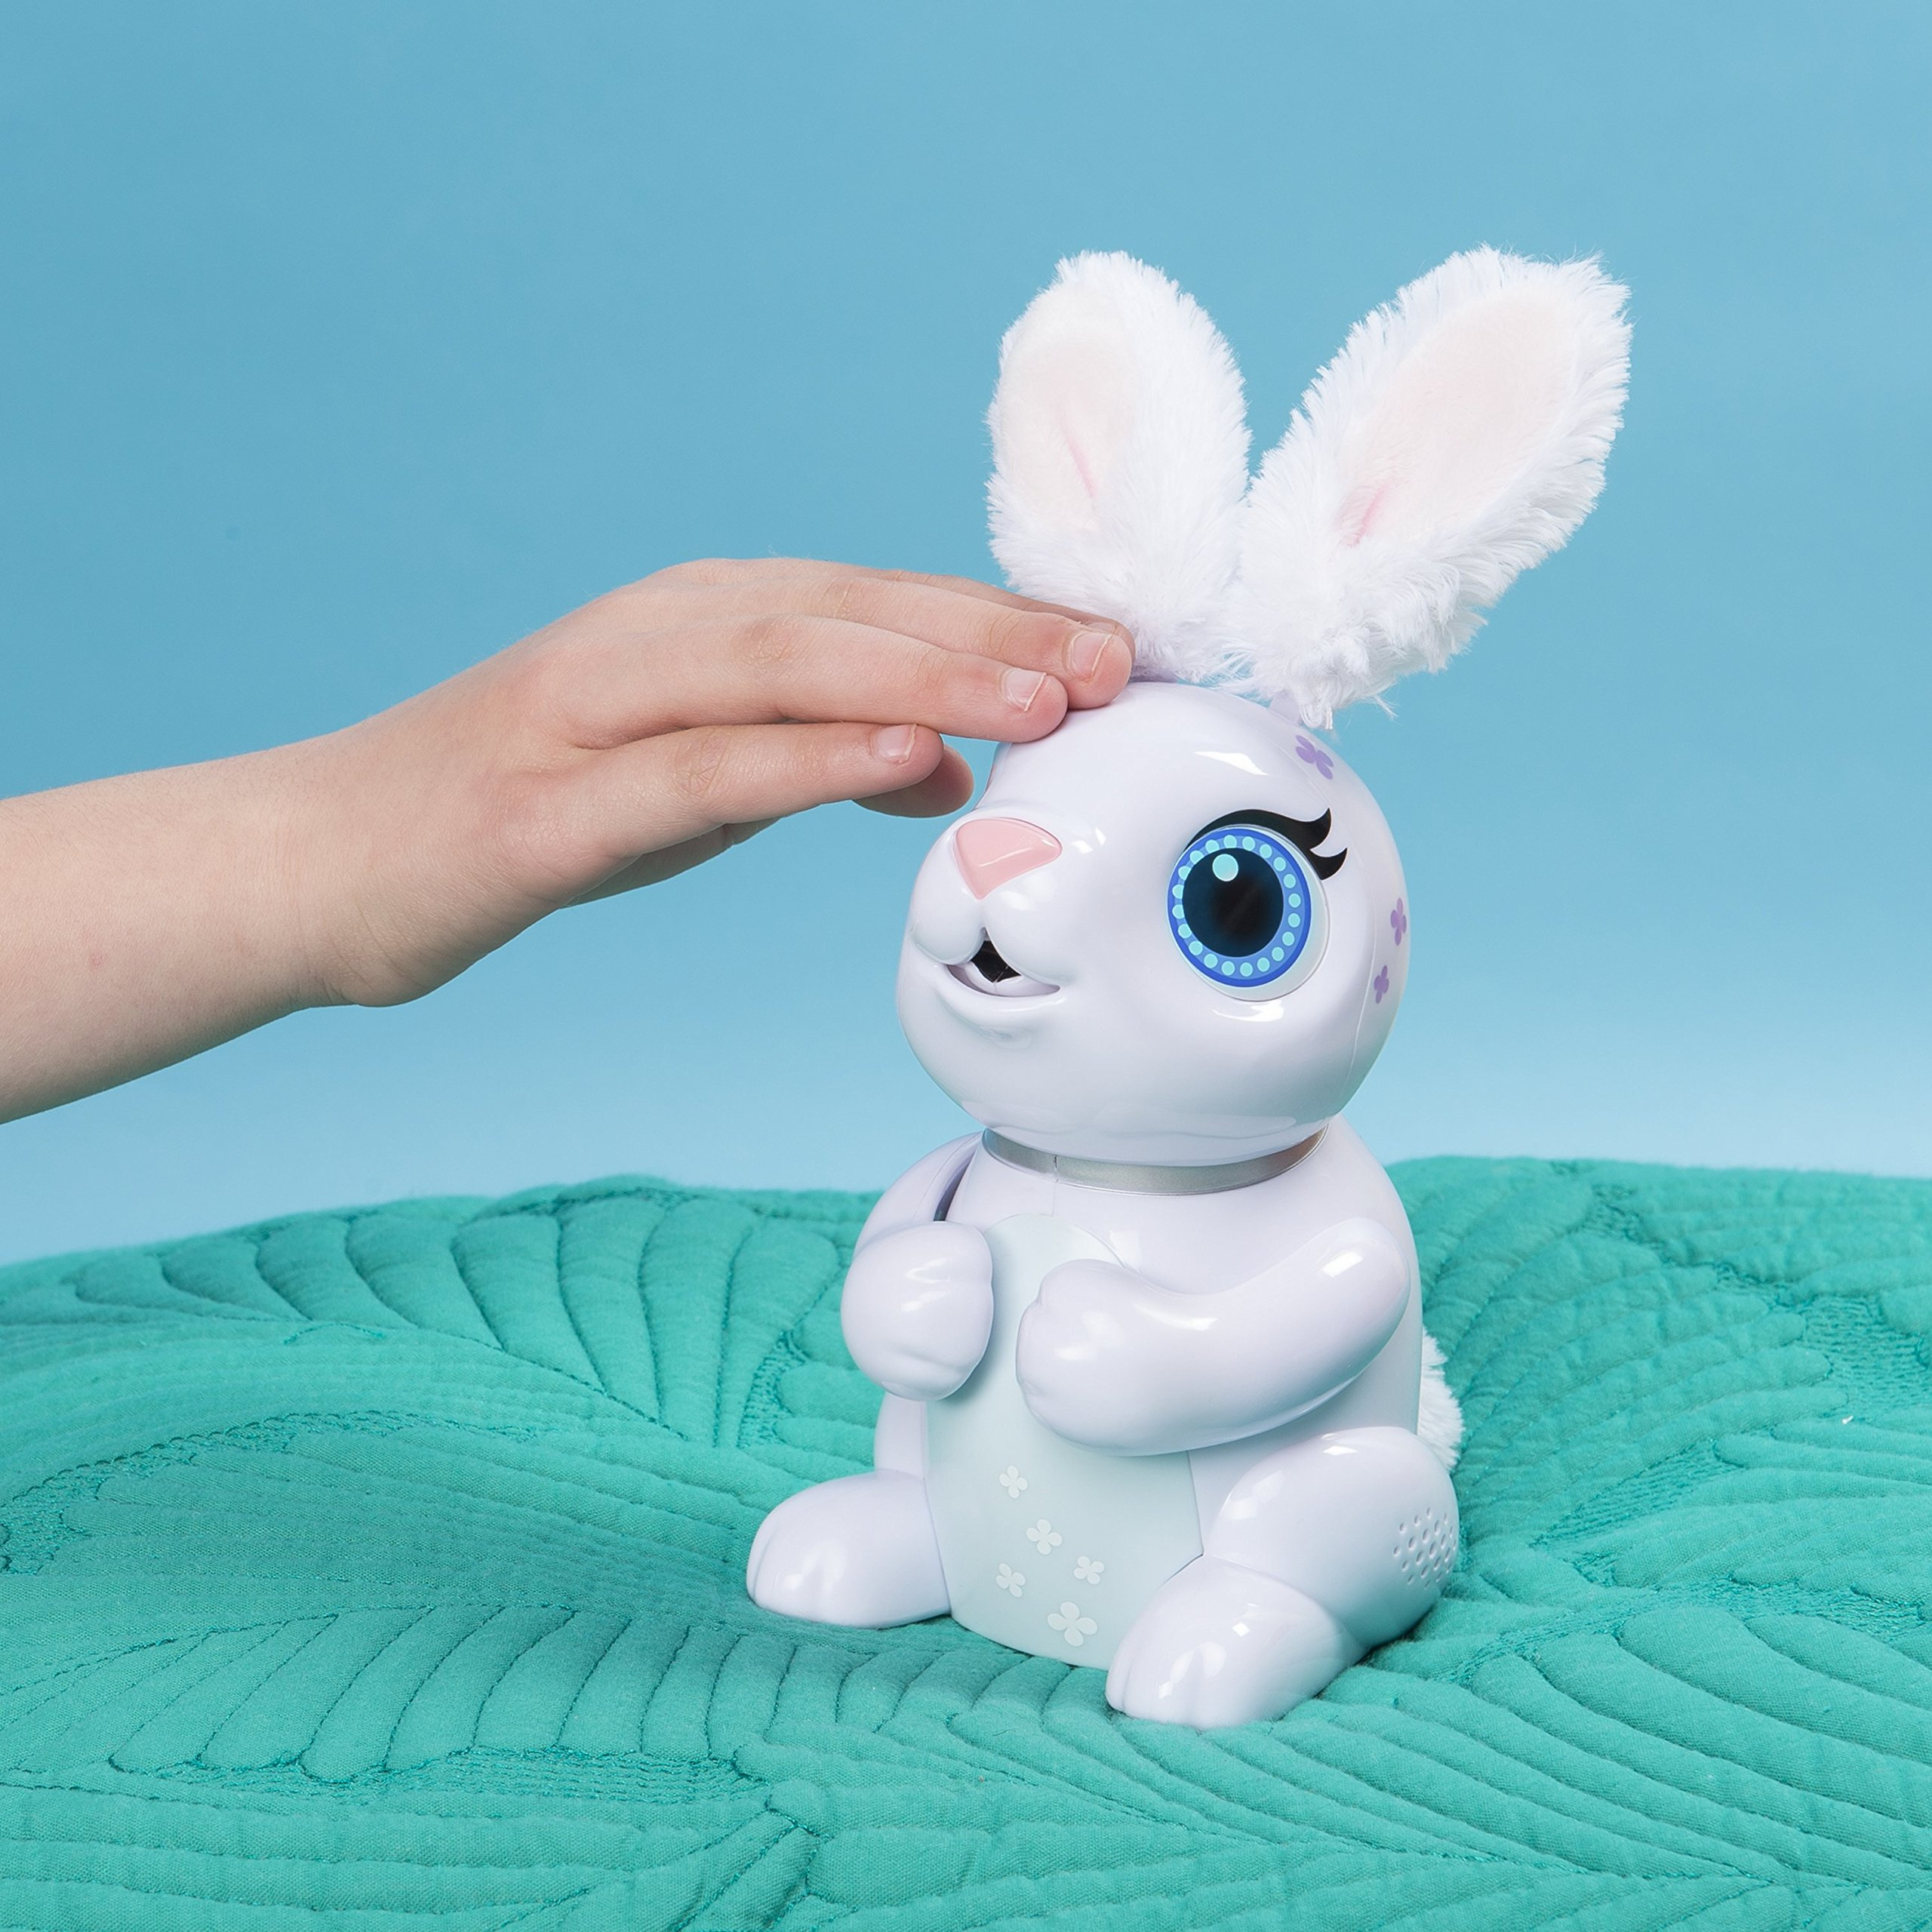 Zoomer Hungry Bunnies Chewy, Interactive Robotic Rabbit That Eats, Ages 5 & Up by Zoomer (Image #4)